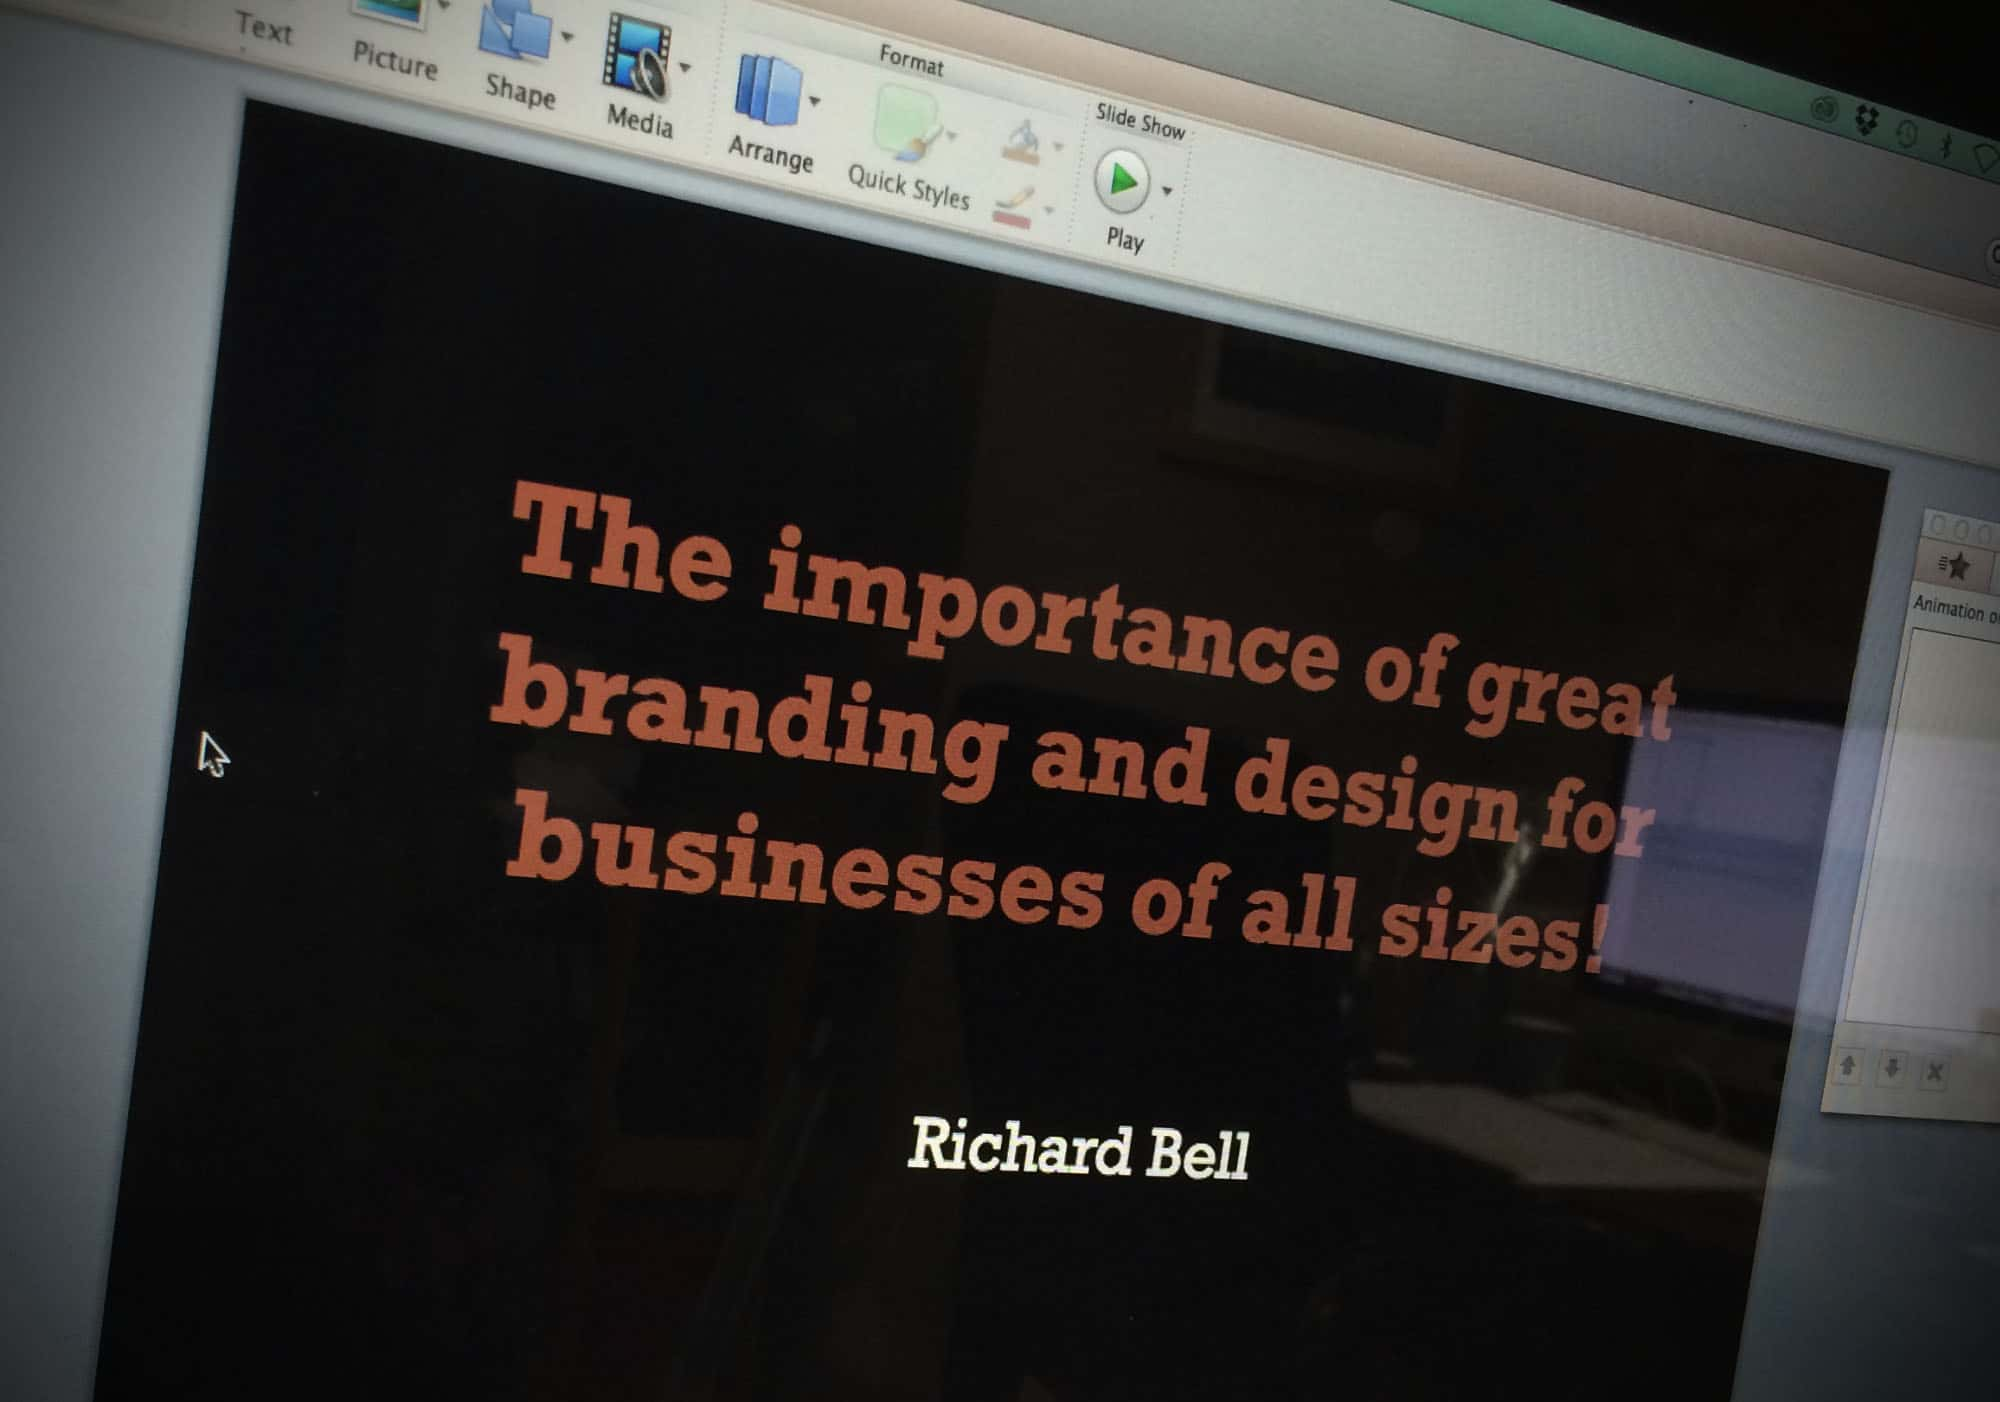 The importance of great branding and design for businesses of all sizes!